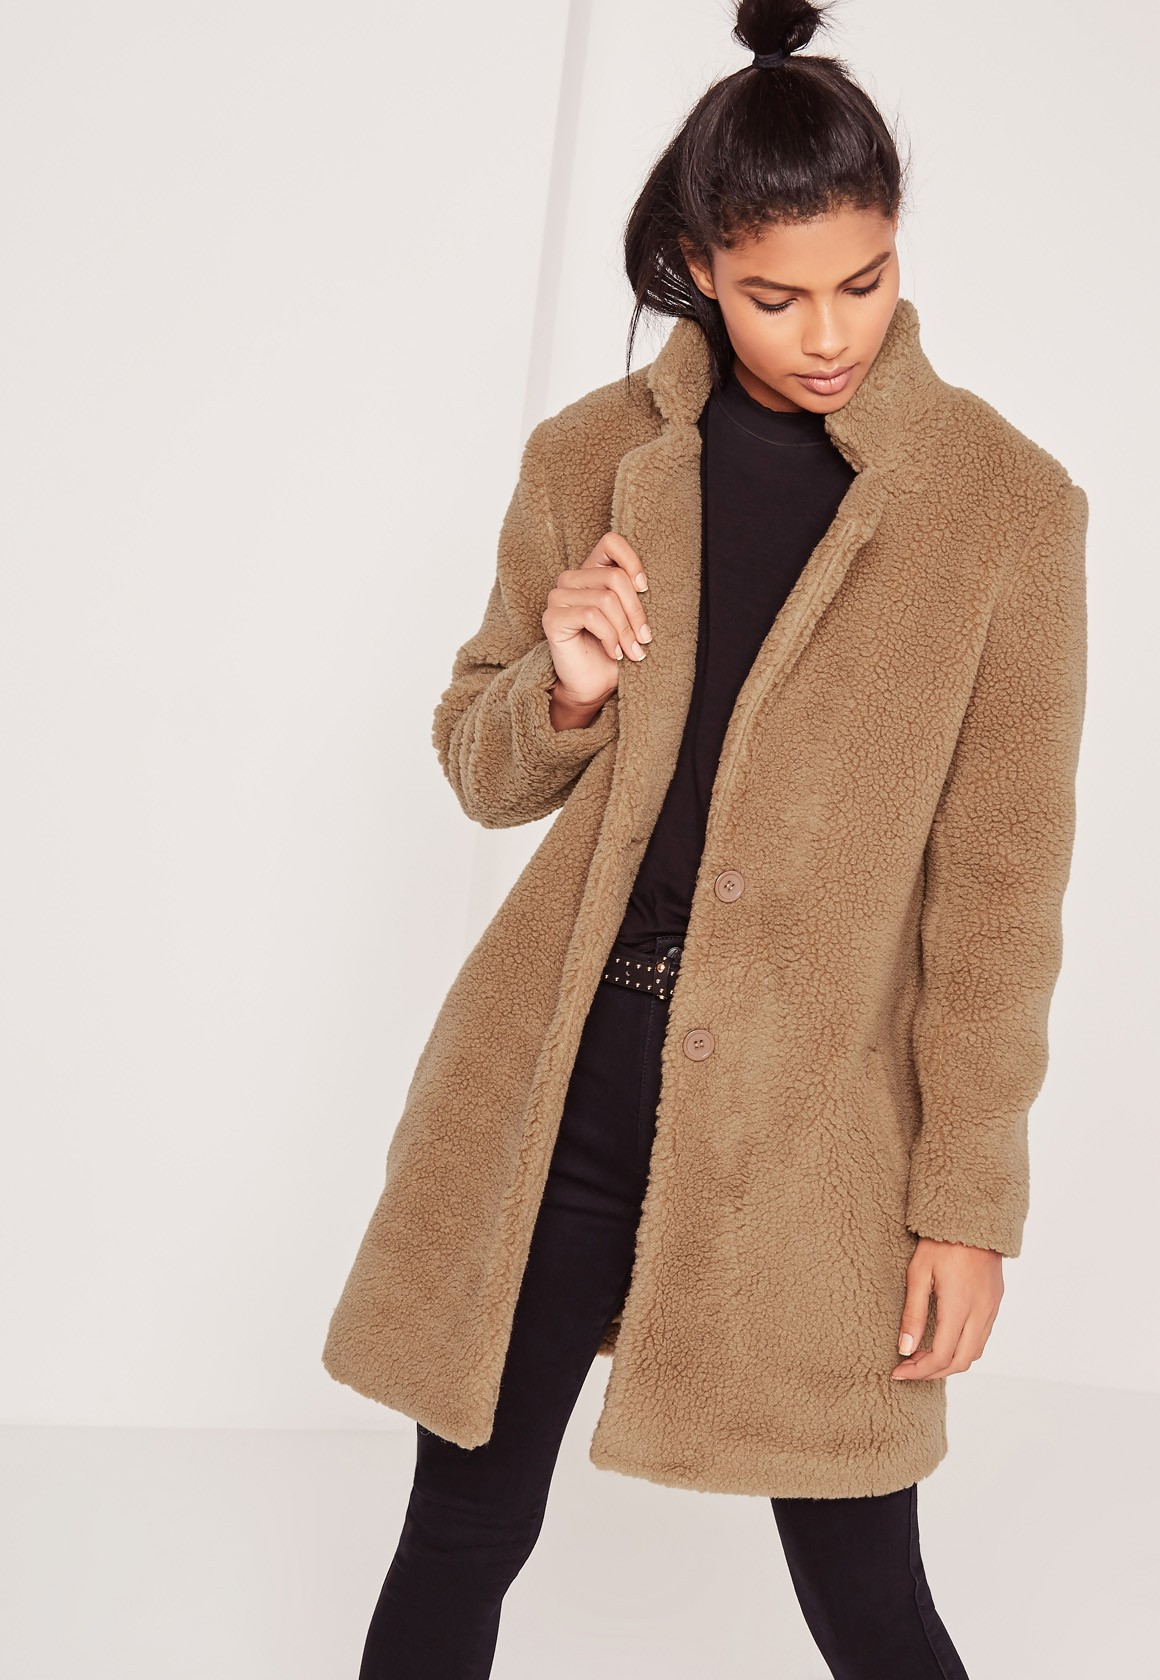 Few common facts about shearling coats